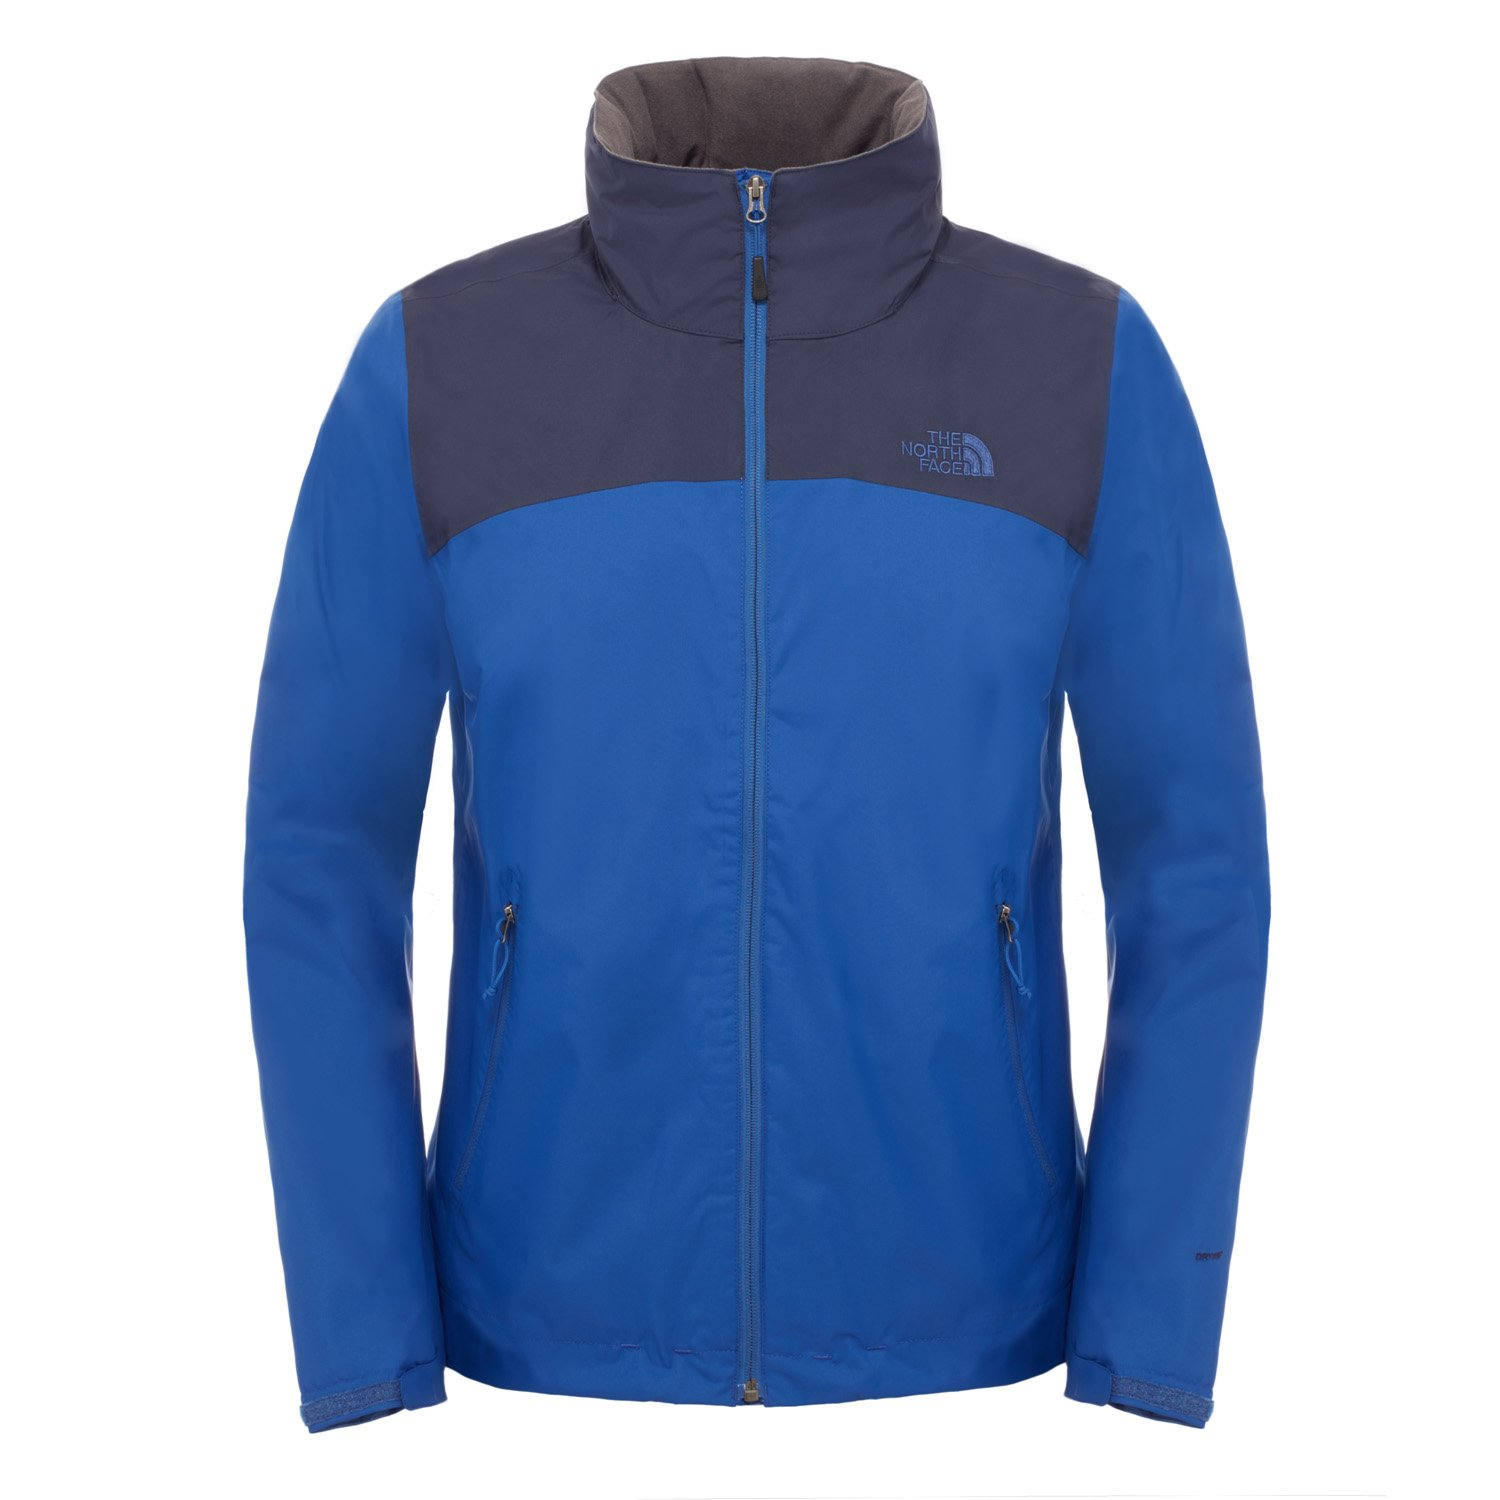 THE NORTH FACE M MACCAGNO JACKET